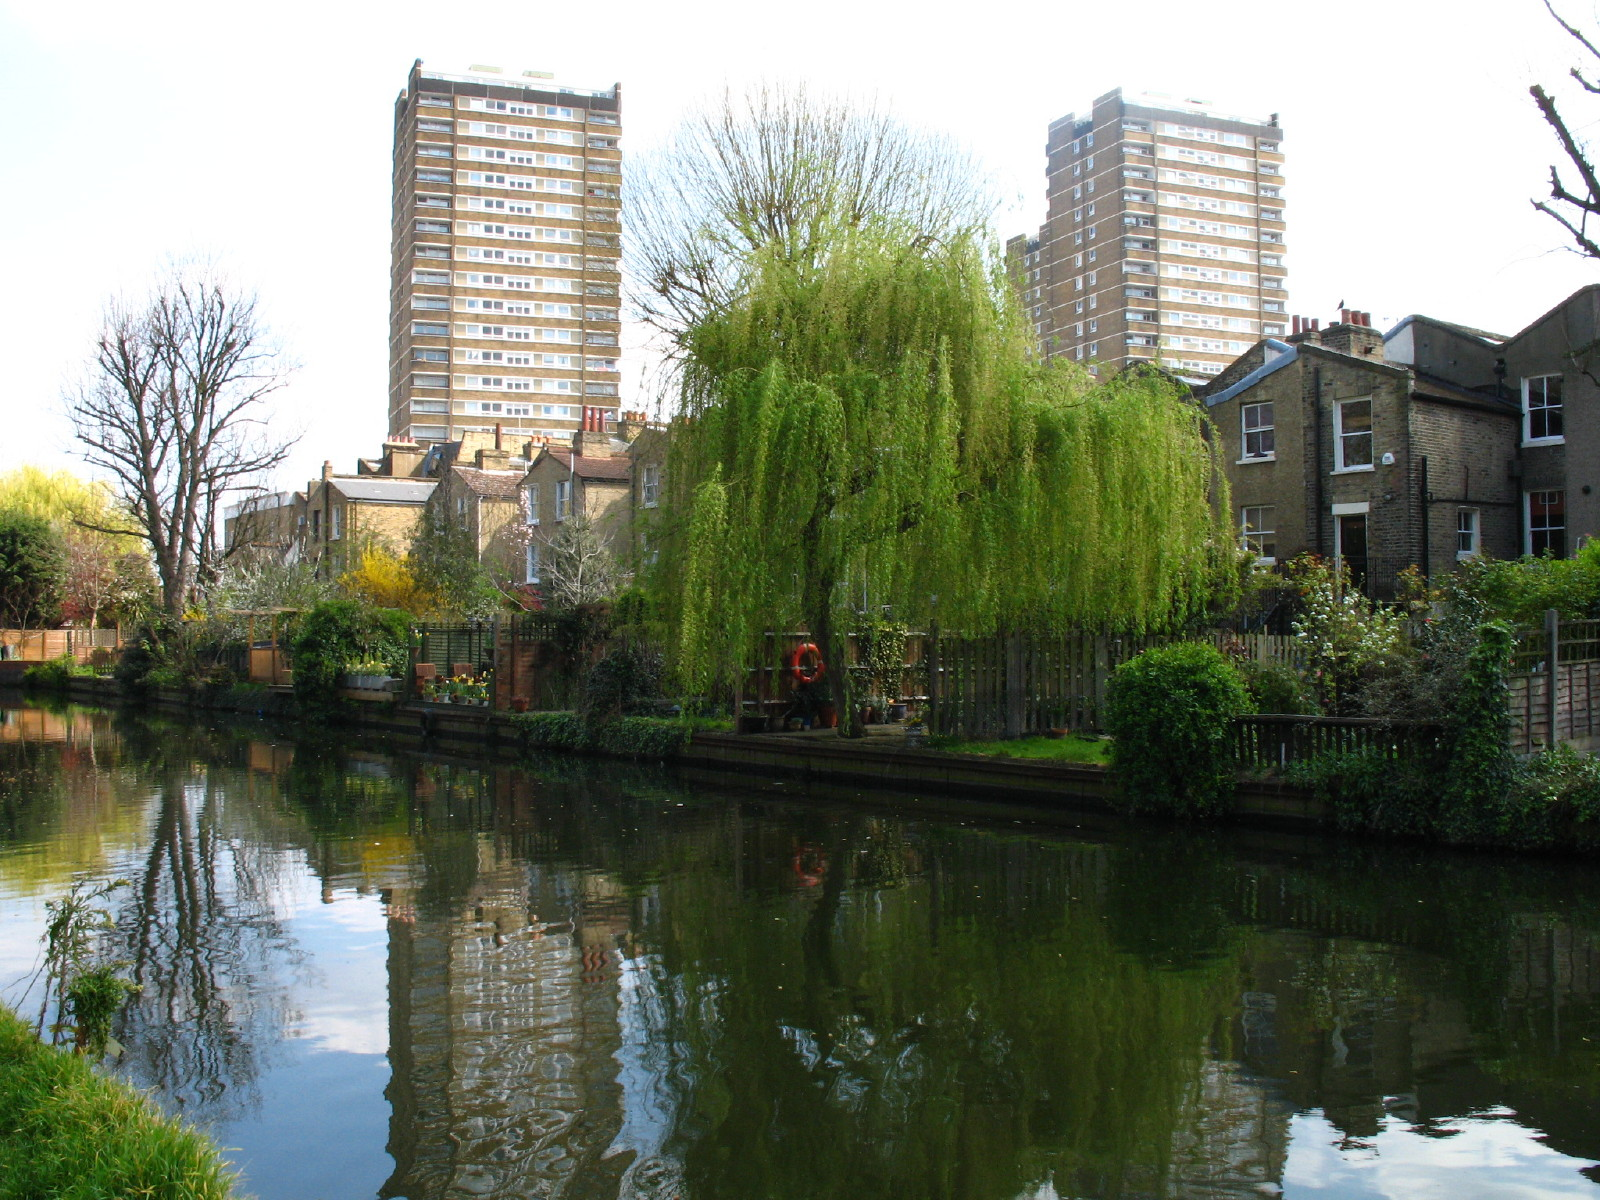 East London Waterways